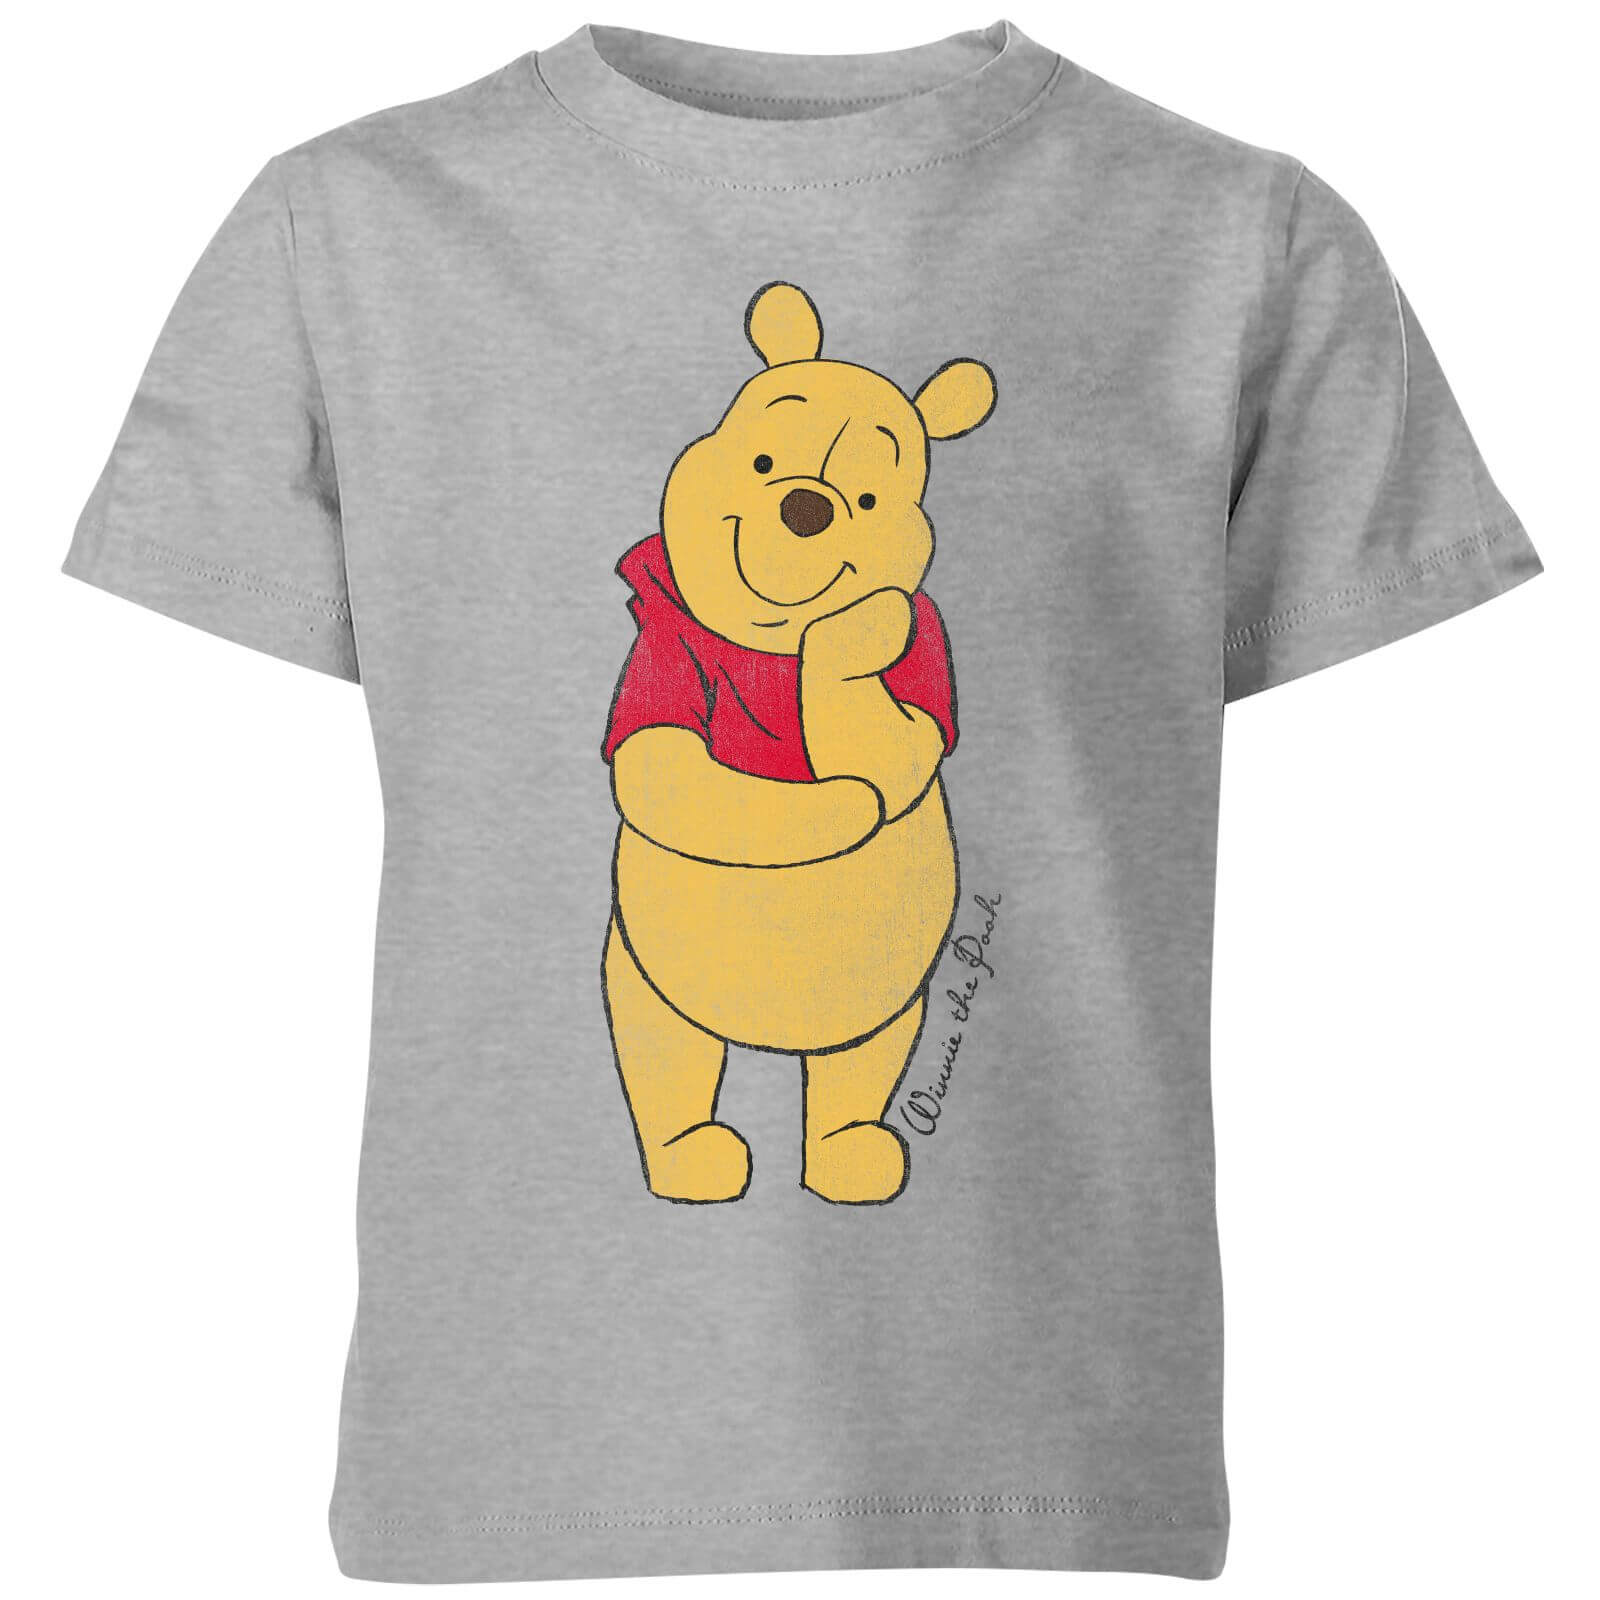 Disney Winnie de Poeh Kinder T-Shirt - Grijs